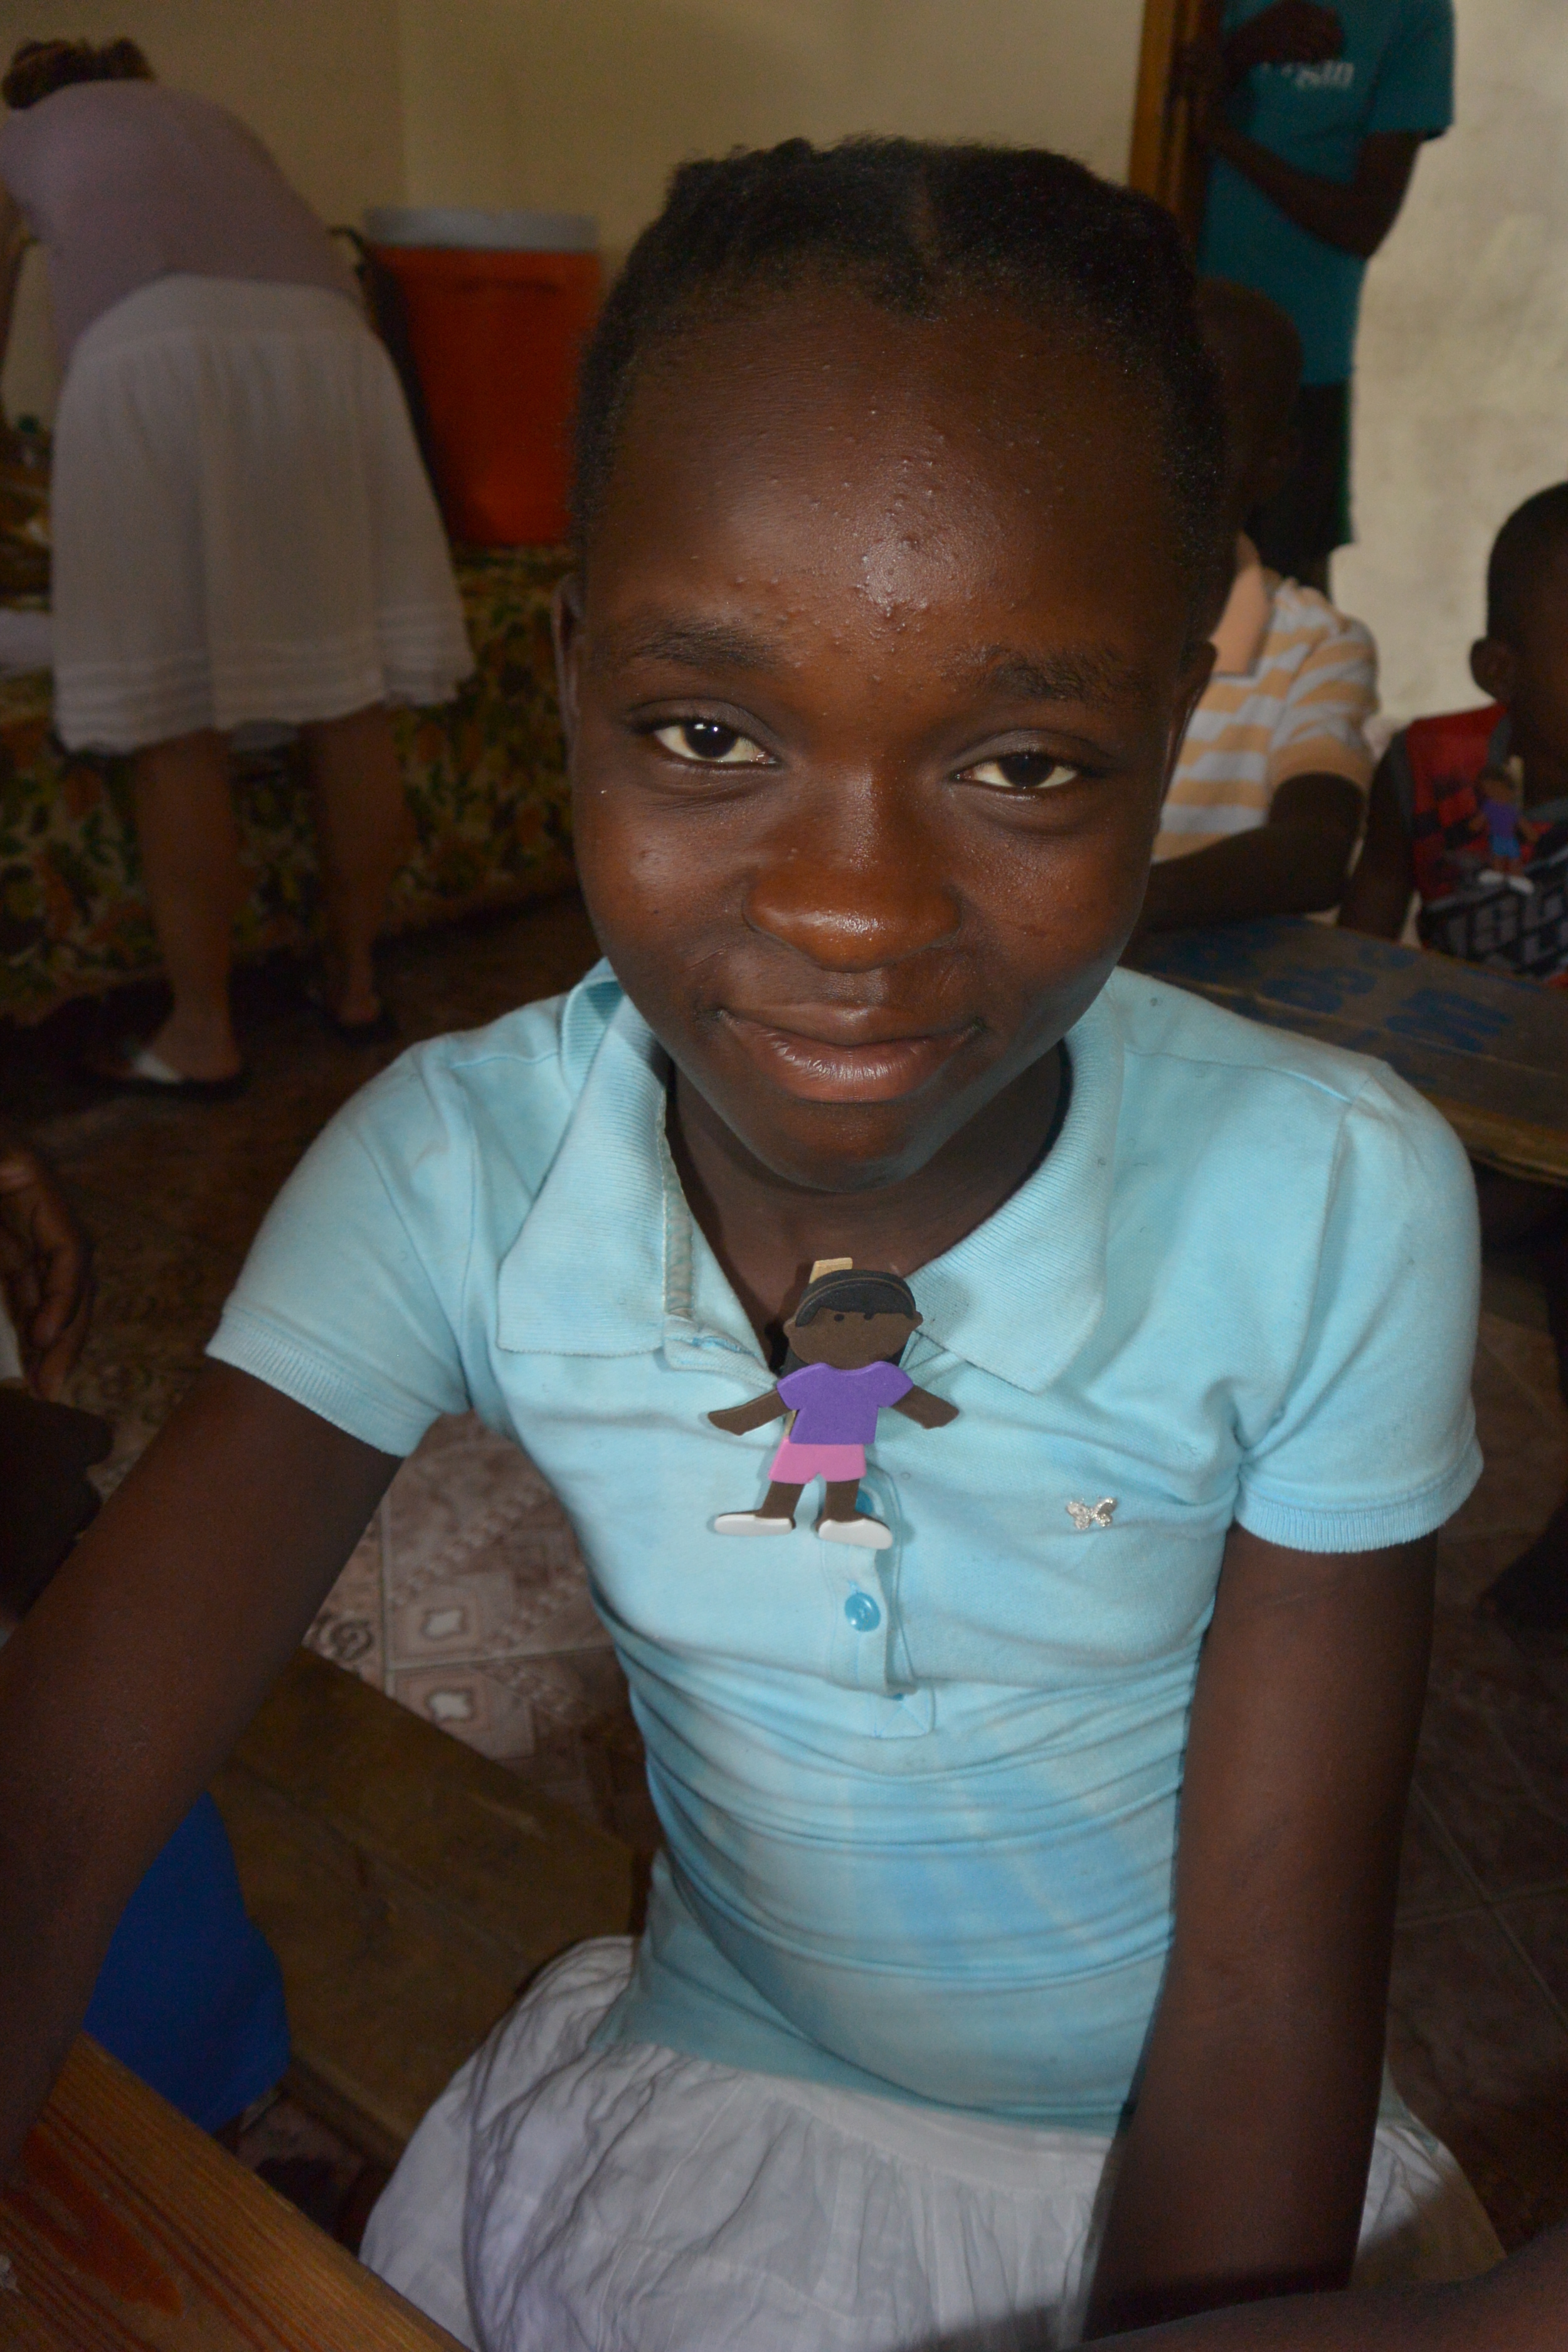 This is Antonide.  She'll be 13 in October.  She's interested in learning and helping, and she mothers the younger boys and girls.